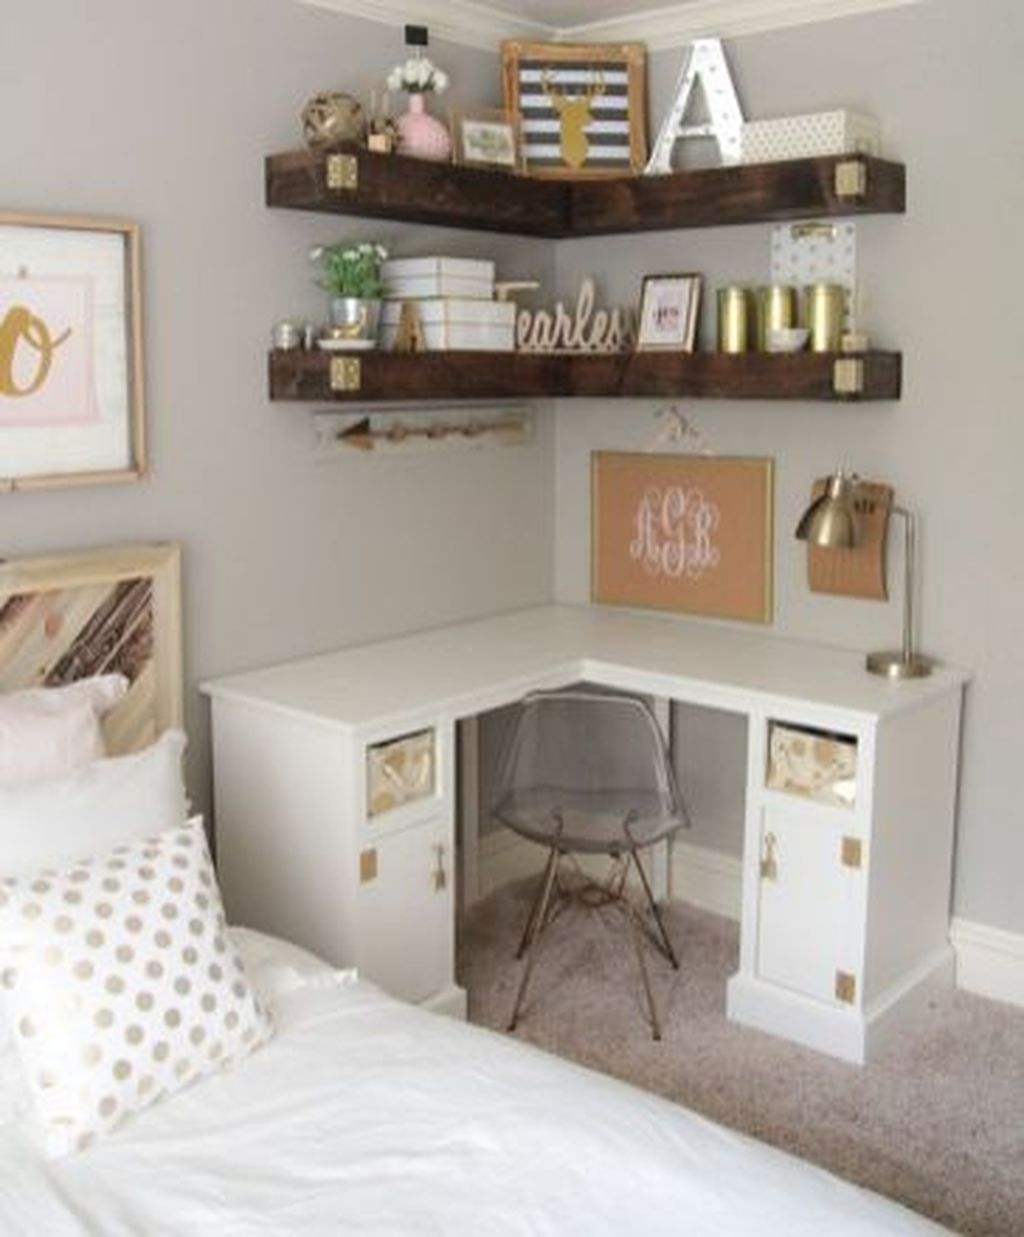 Easy Diy College Apartment Decorating Ideas On A Budget 25